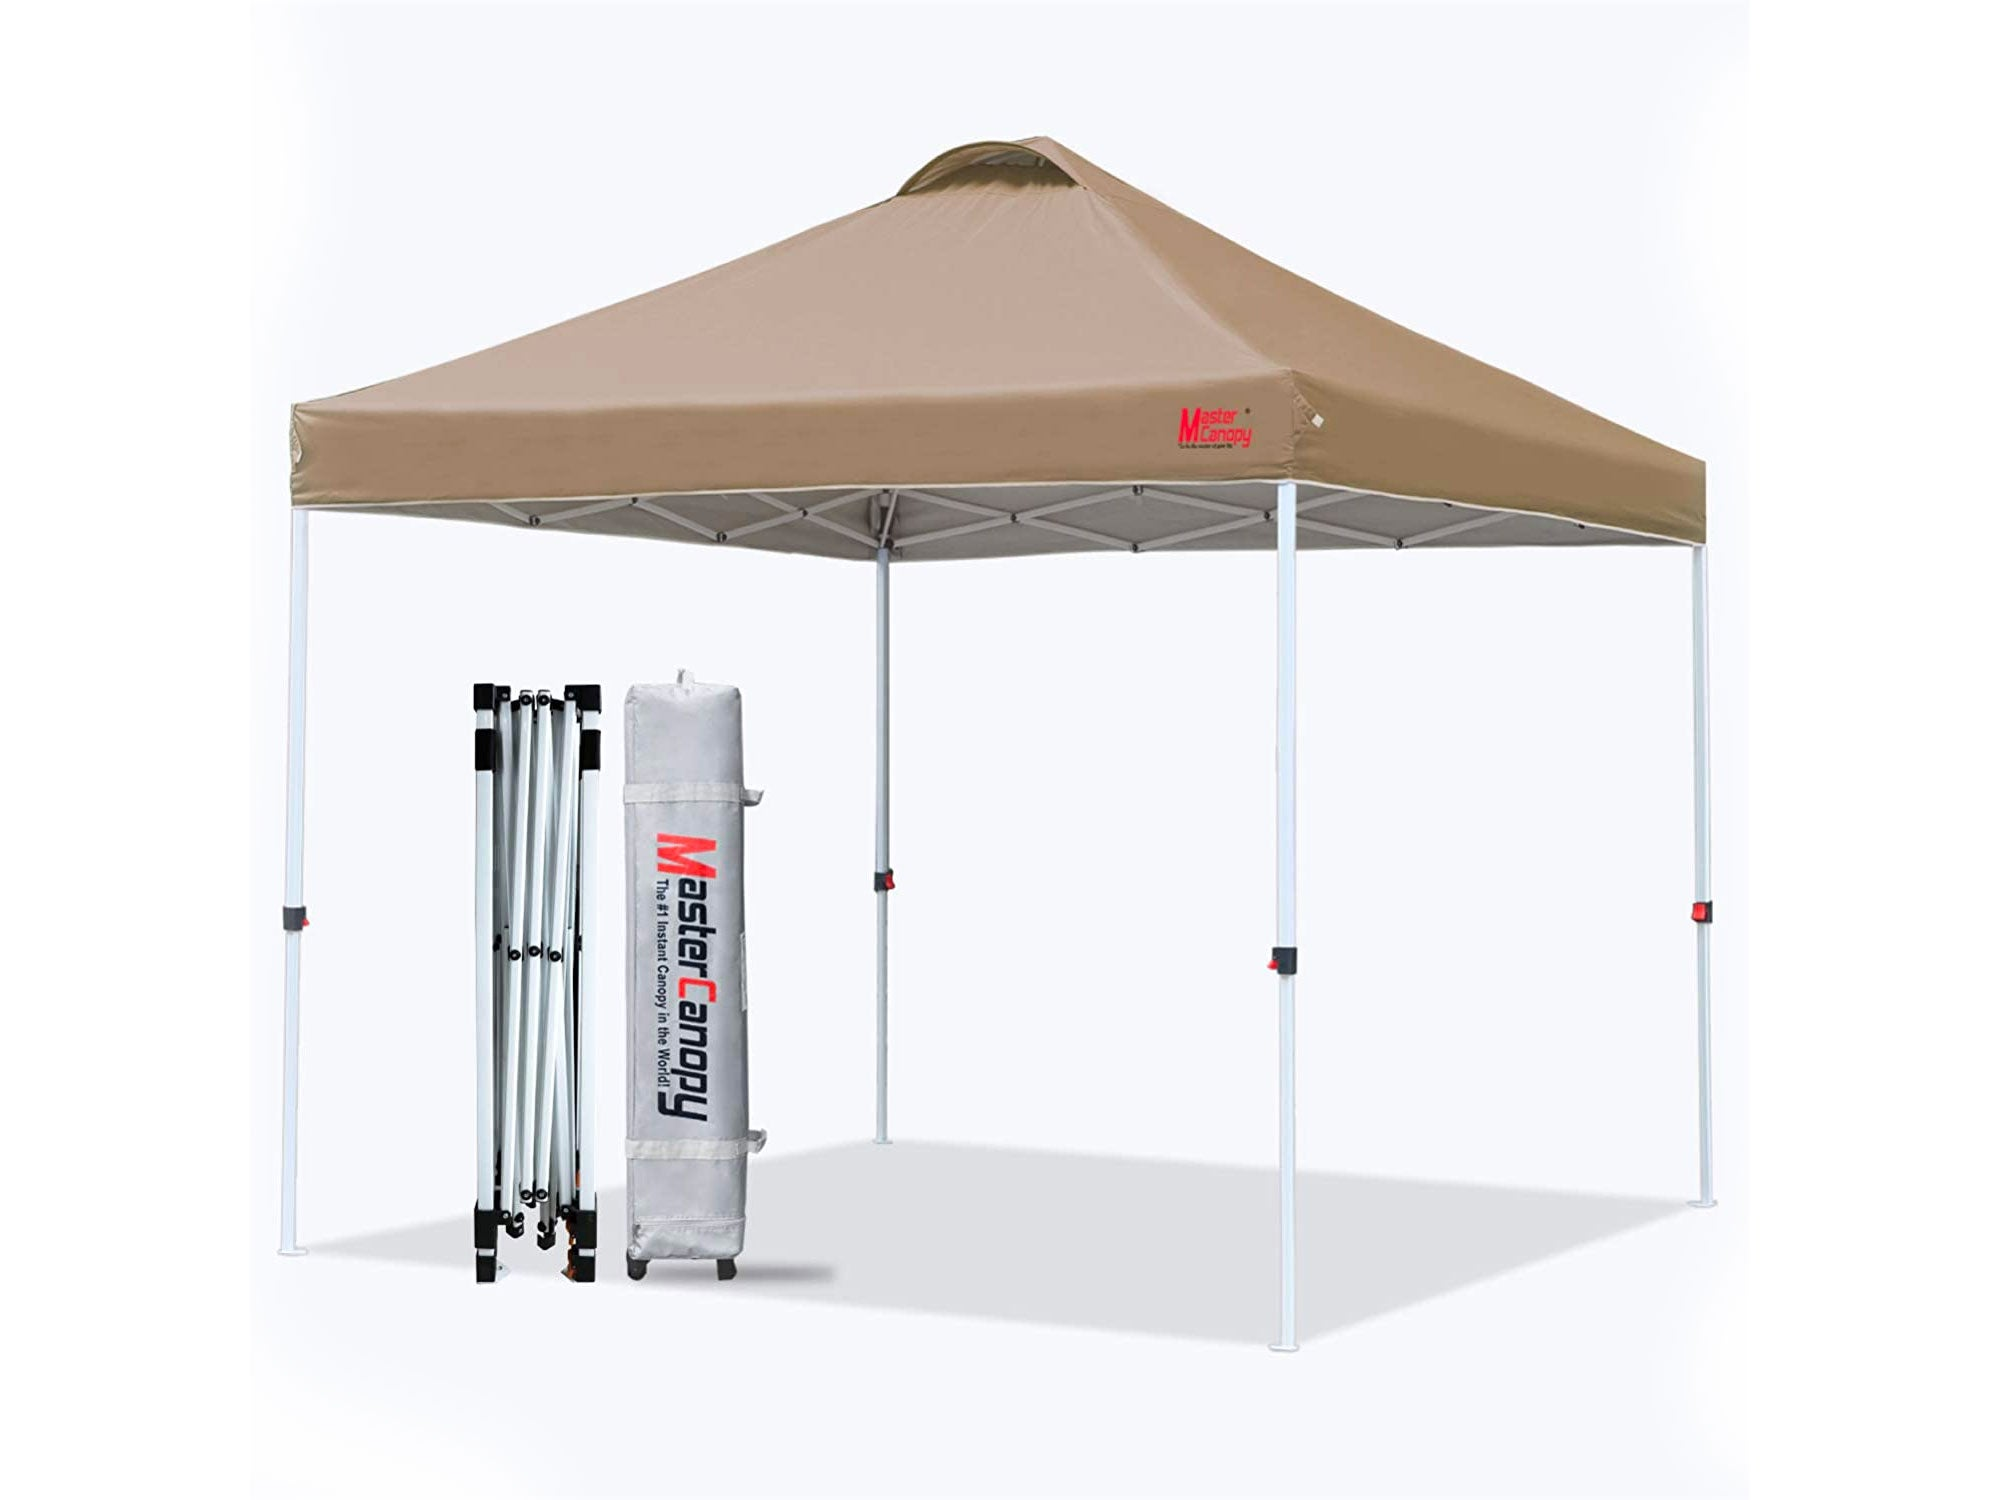 MASTERCANOPY Pop-up Canopy Tent Commercial Instant Canopy with Wheeled Bag,Canopy Sandbags x4,Tent Stakes x 4 (10'x10' Khaki)